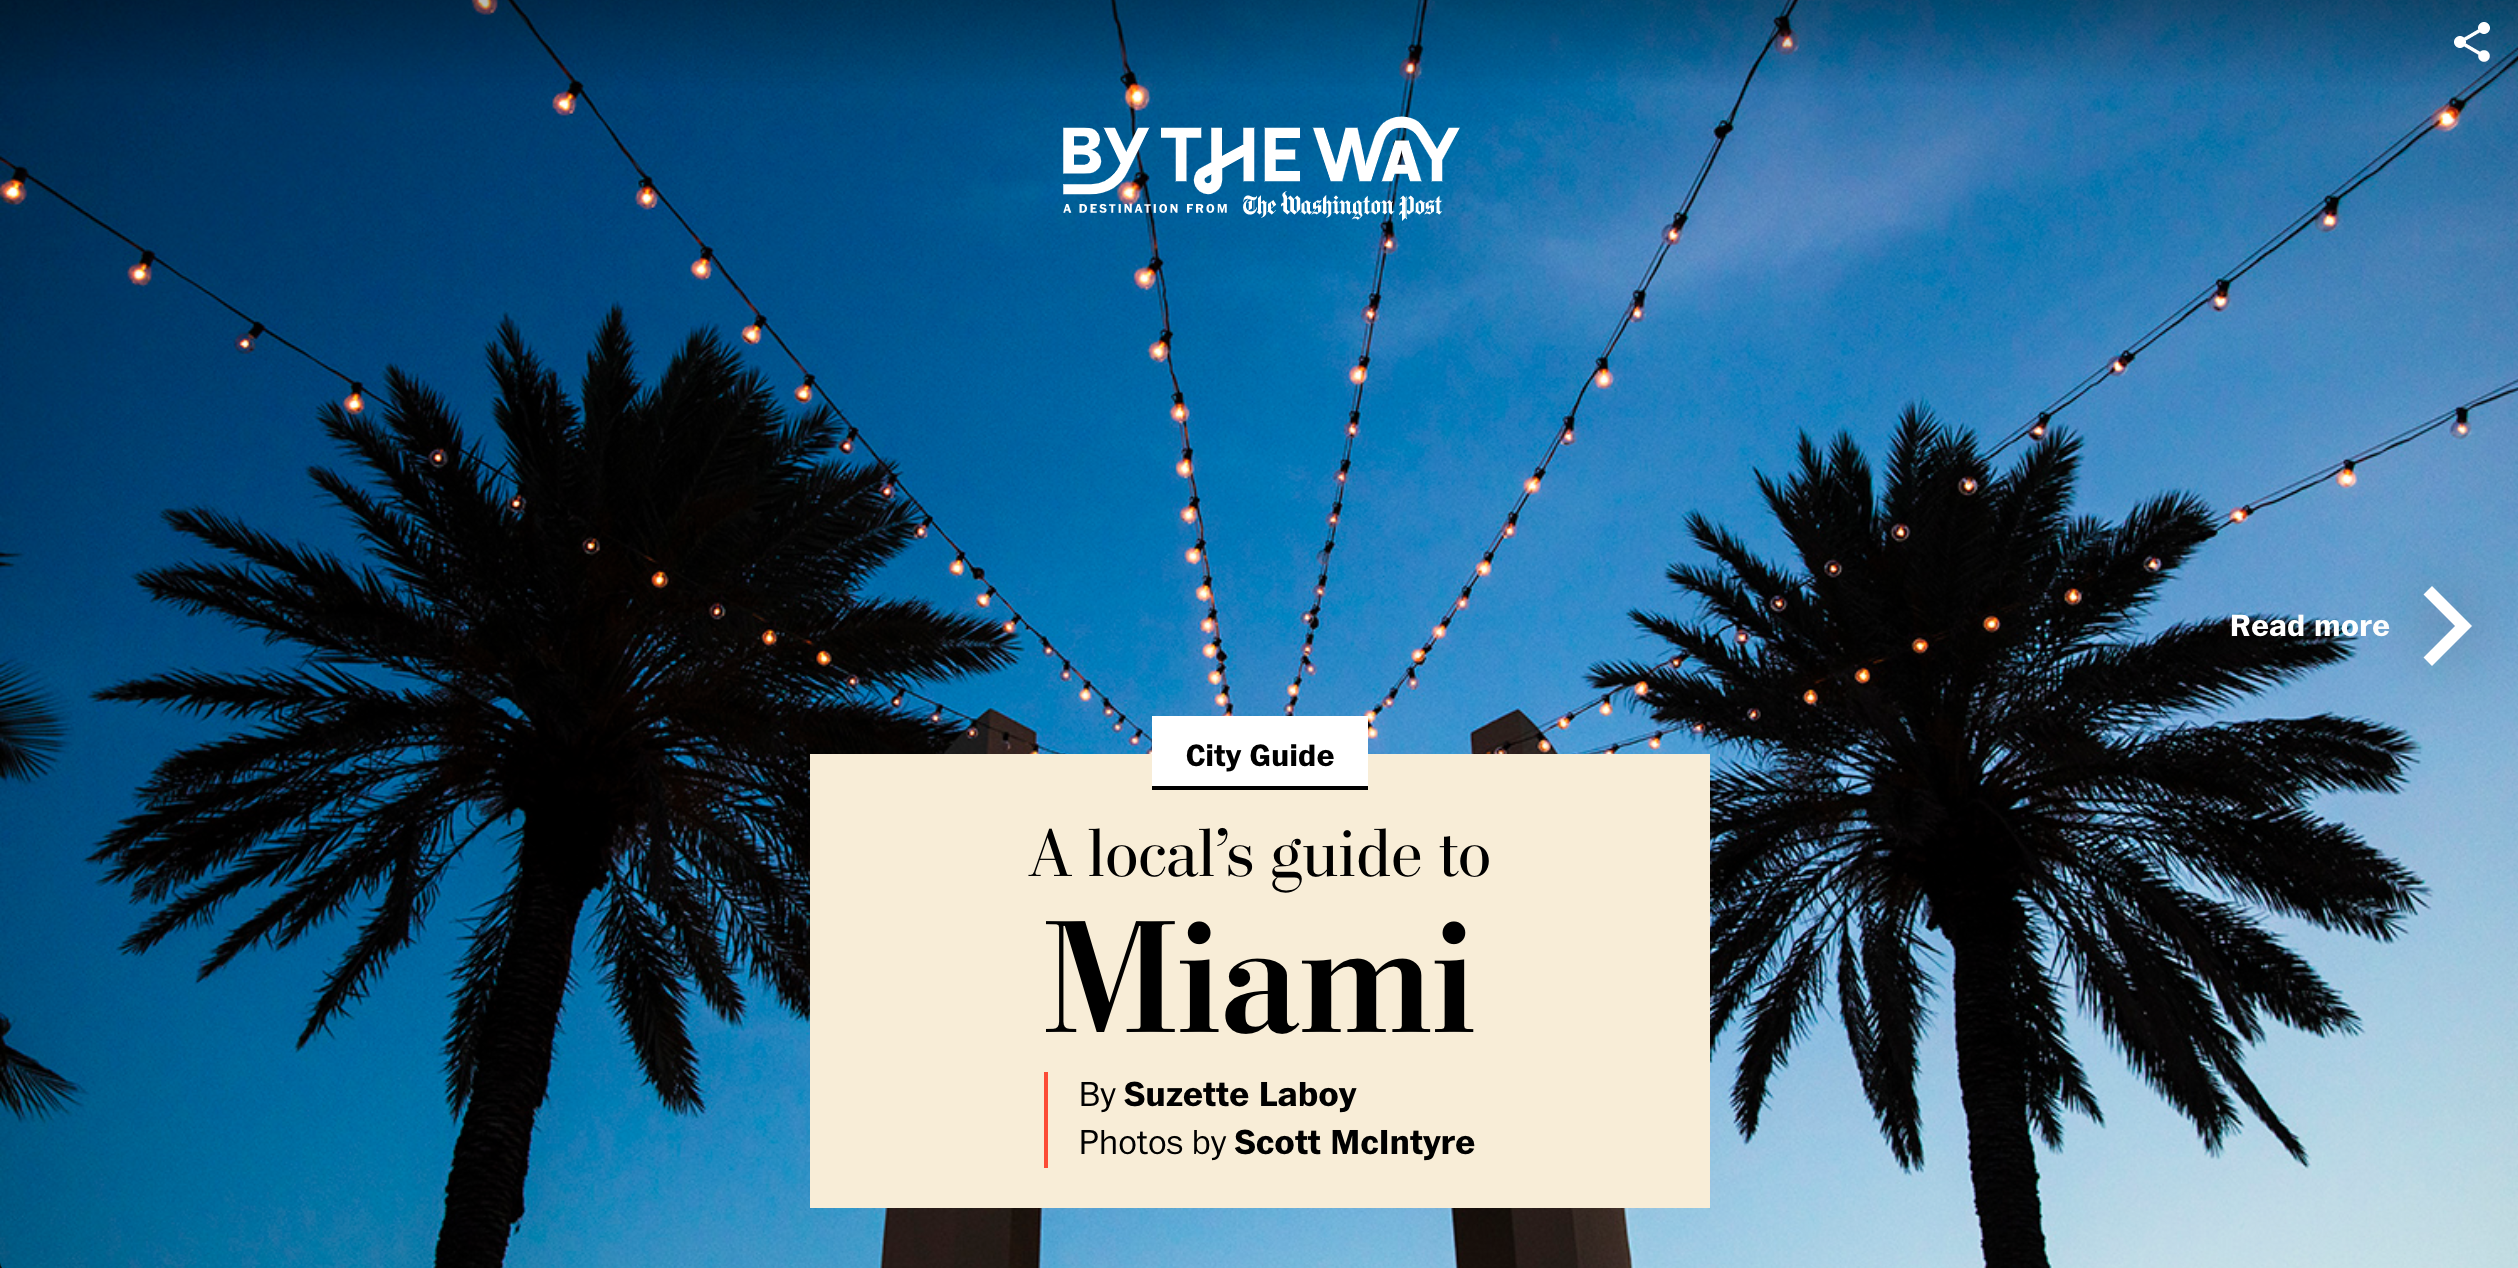 https://www.washingtonpost.com/graphics/2019/lifestyle/travel/amp-stories/a-locals-guide-to-what-to-eat-and-do-in-miami/?fbclid=IwAR1Q1Pg4cIp5Ml9J1LQbh3kSISC6ufiSM5xJ8RQZQB1bhRWnd3_OLDO5t7o